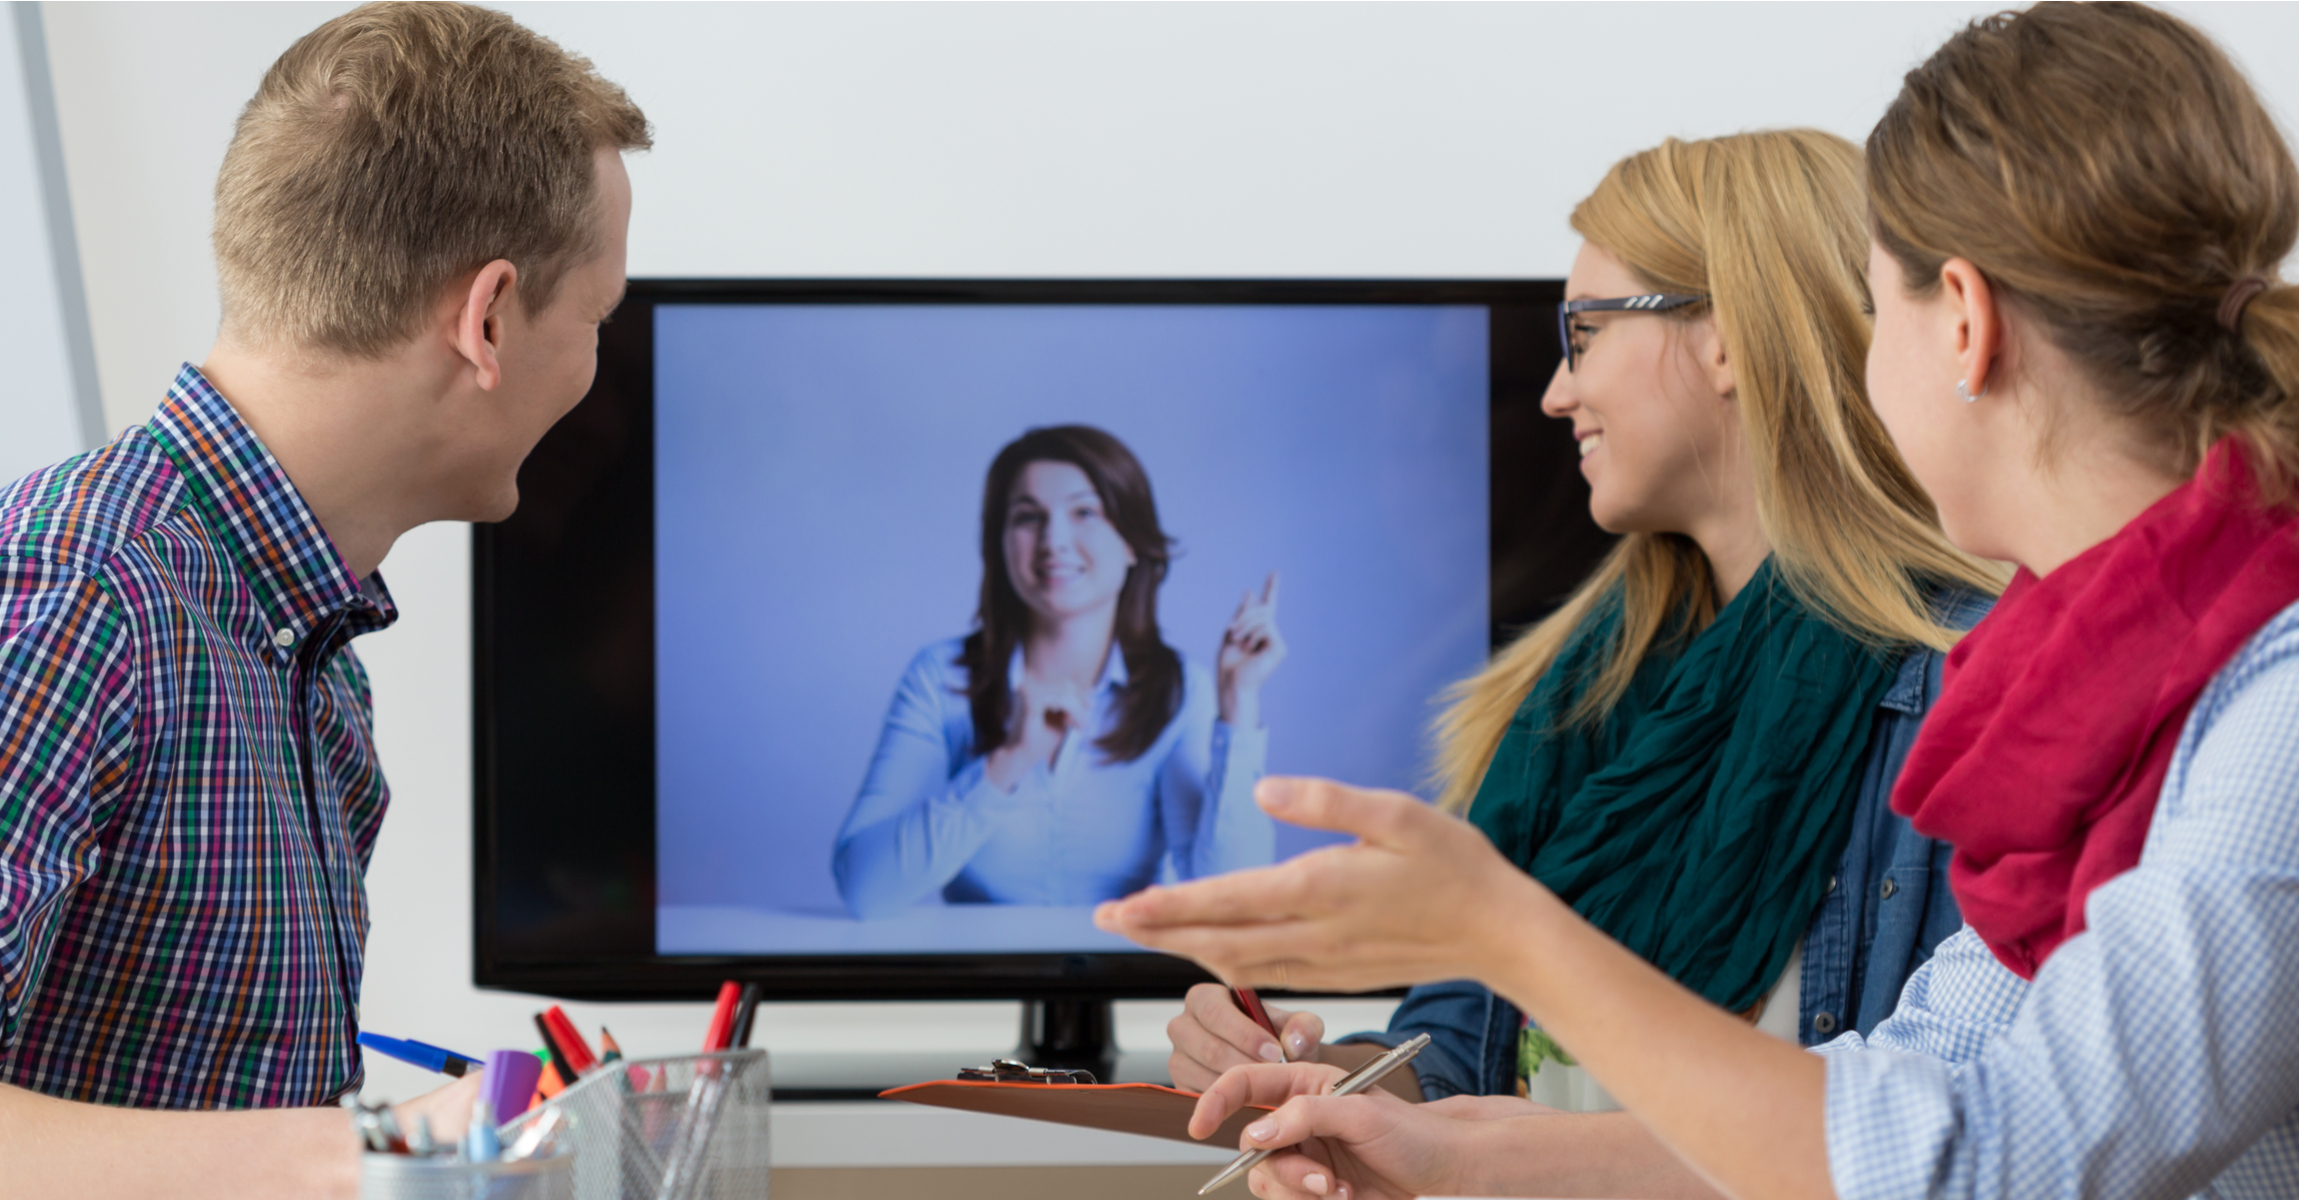 VIDEO_CONFERENCING_PEOPLE_LOOKING_AT_SCREEN